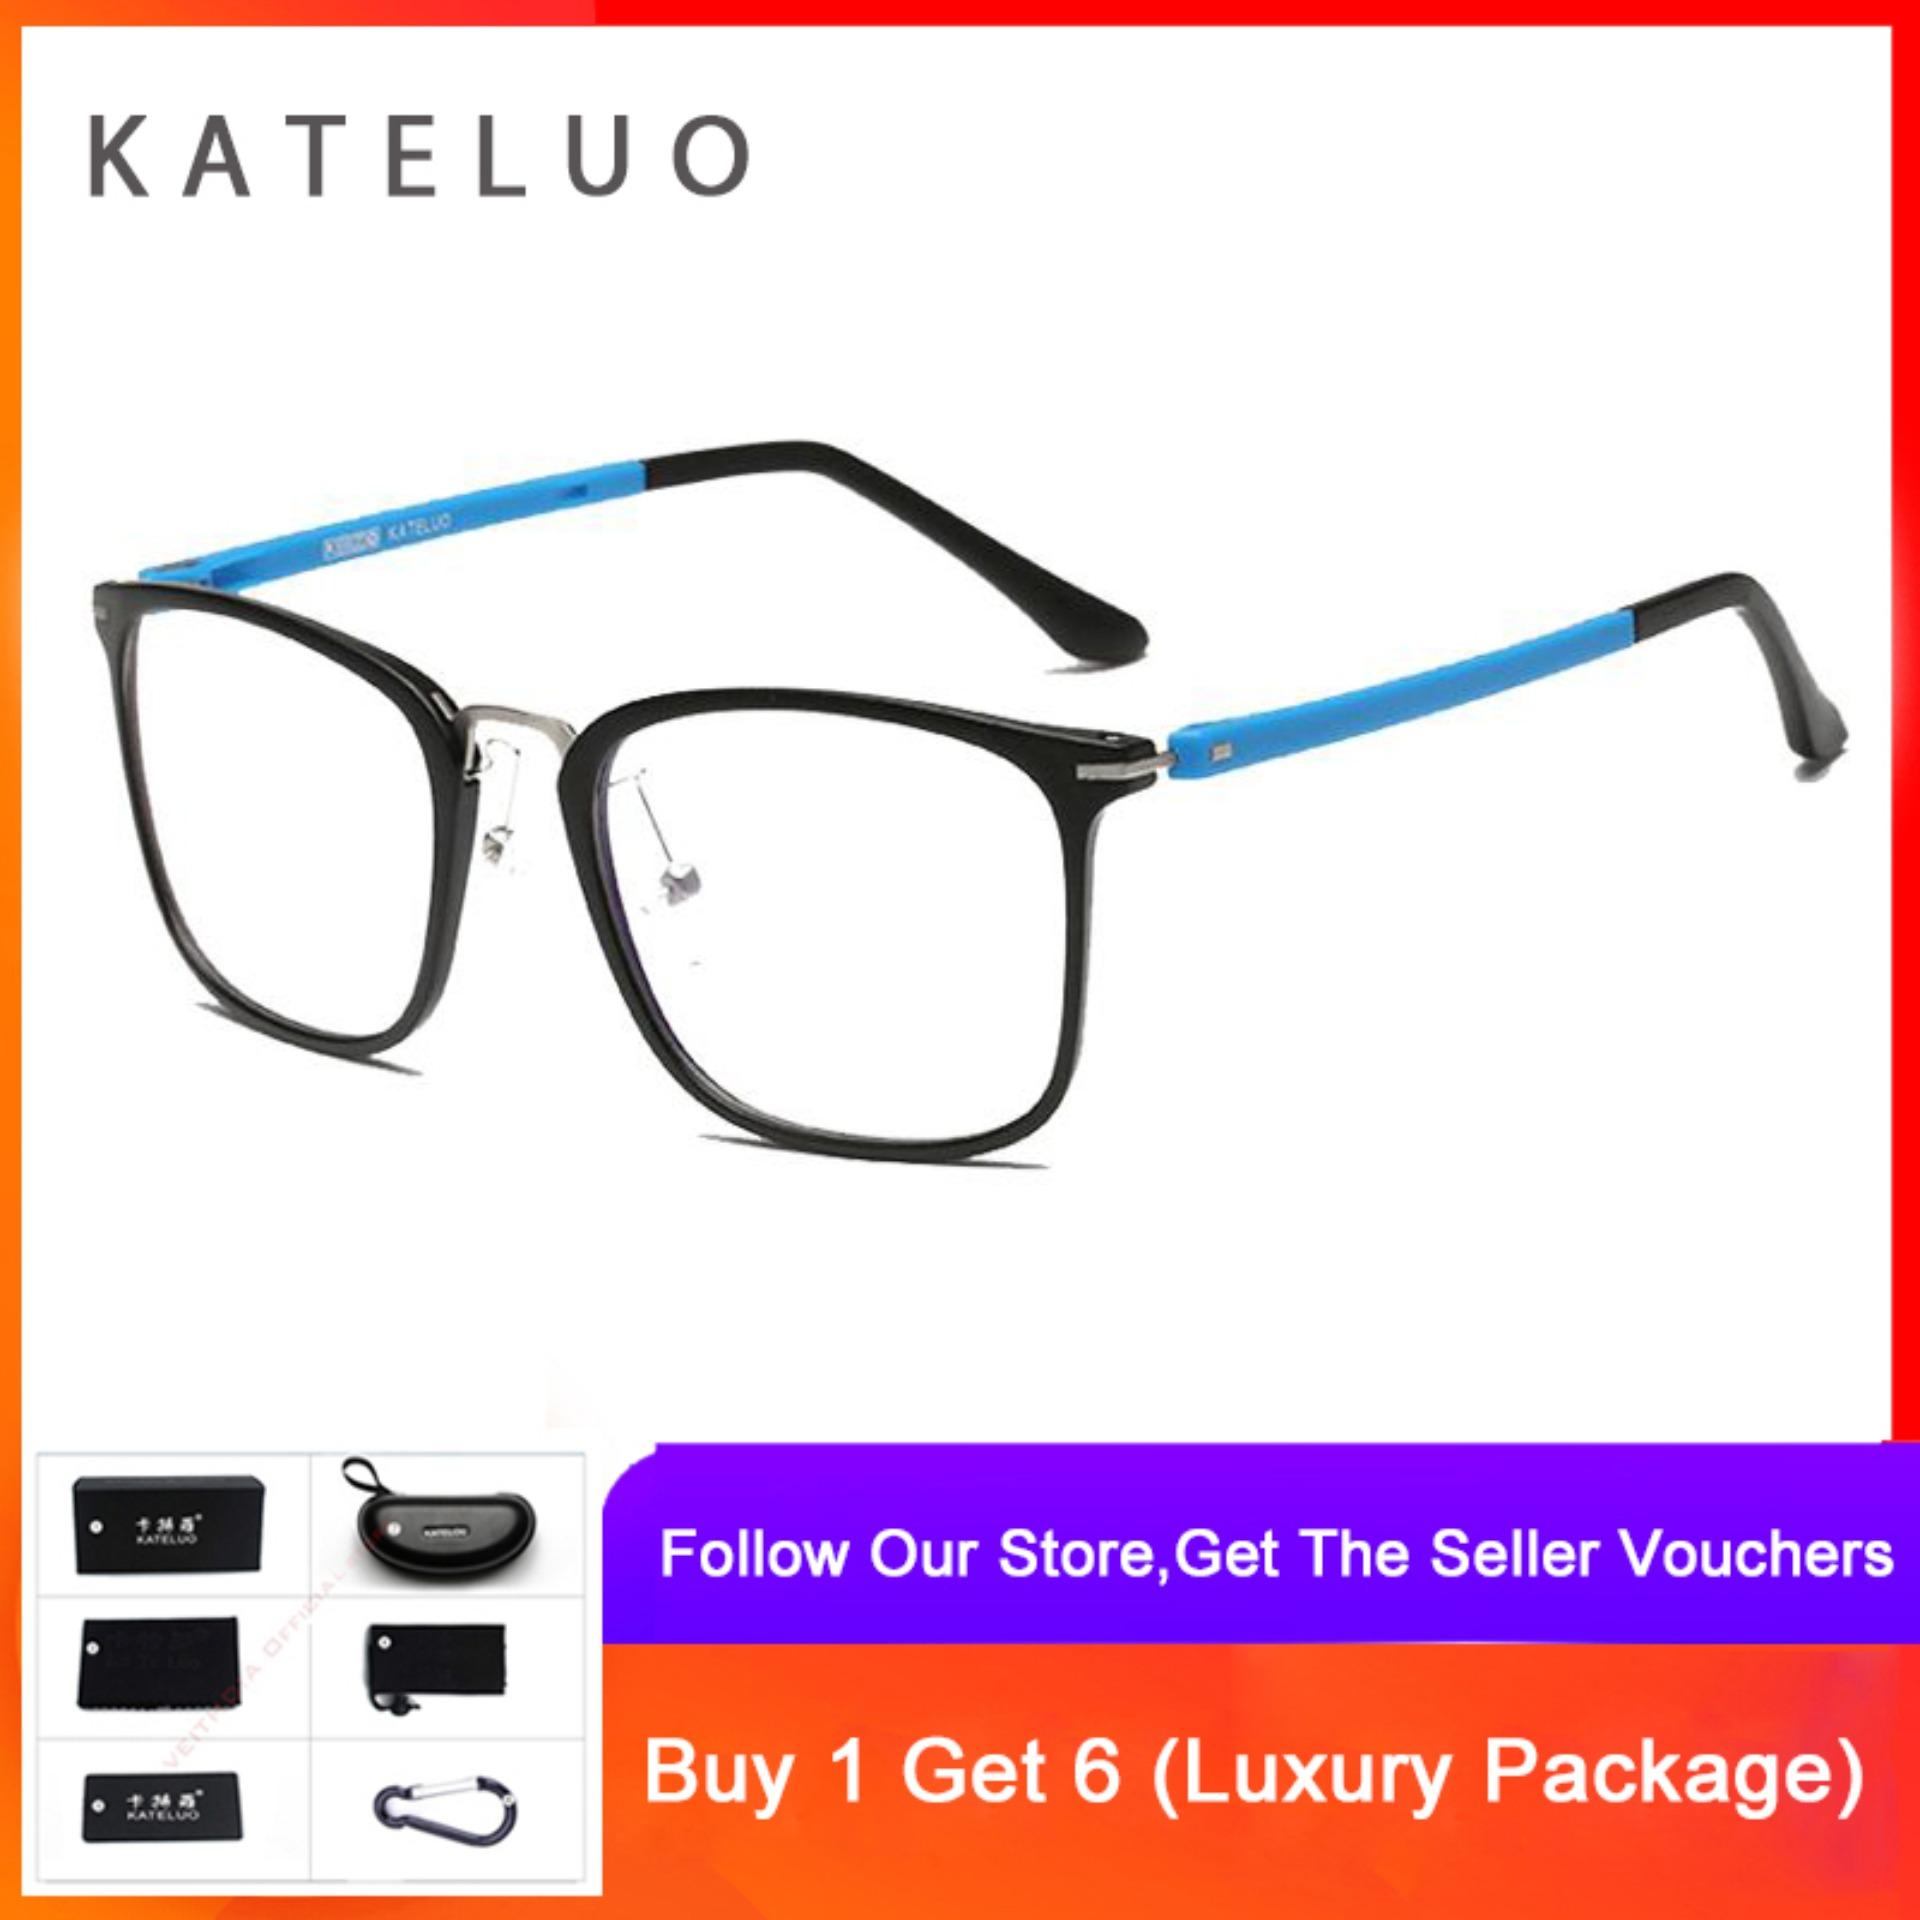 KATELUO Computer Goggles Anti Blue Laser Ray Fatigue Radiation-resistant TR-90 Glasses Eyeglasses Frame Eyewear 9928